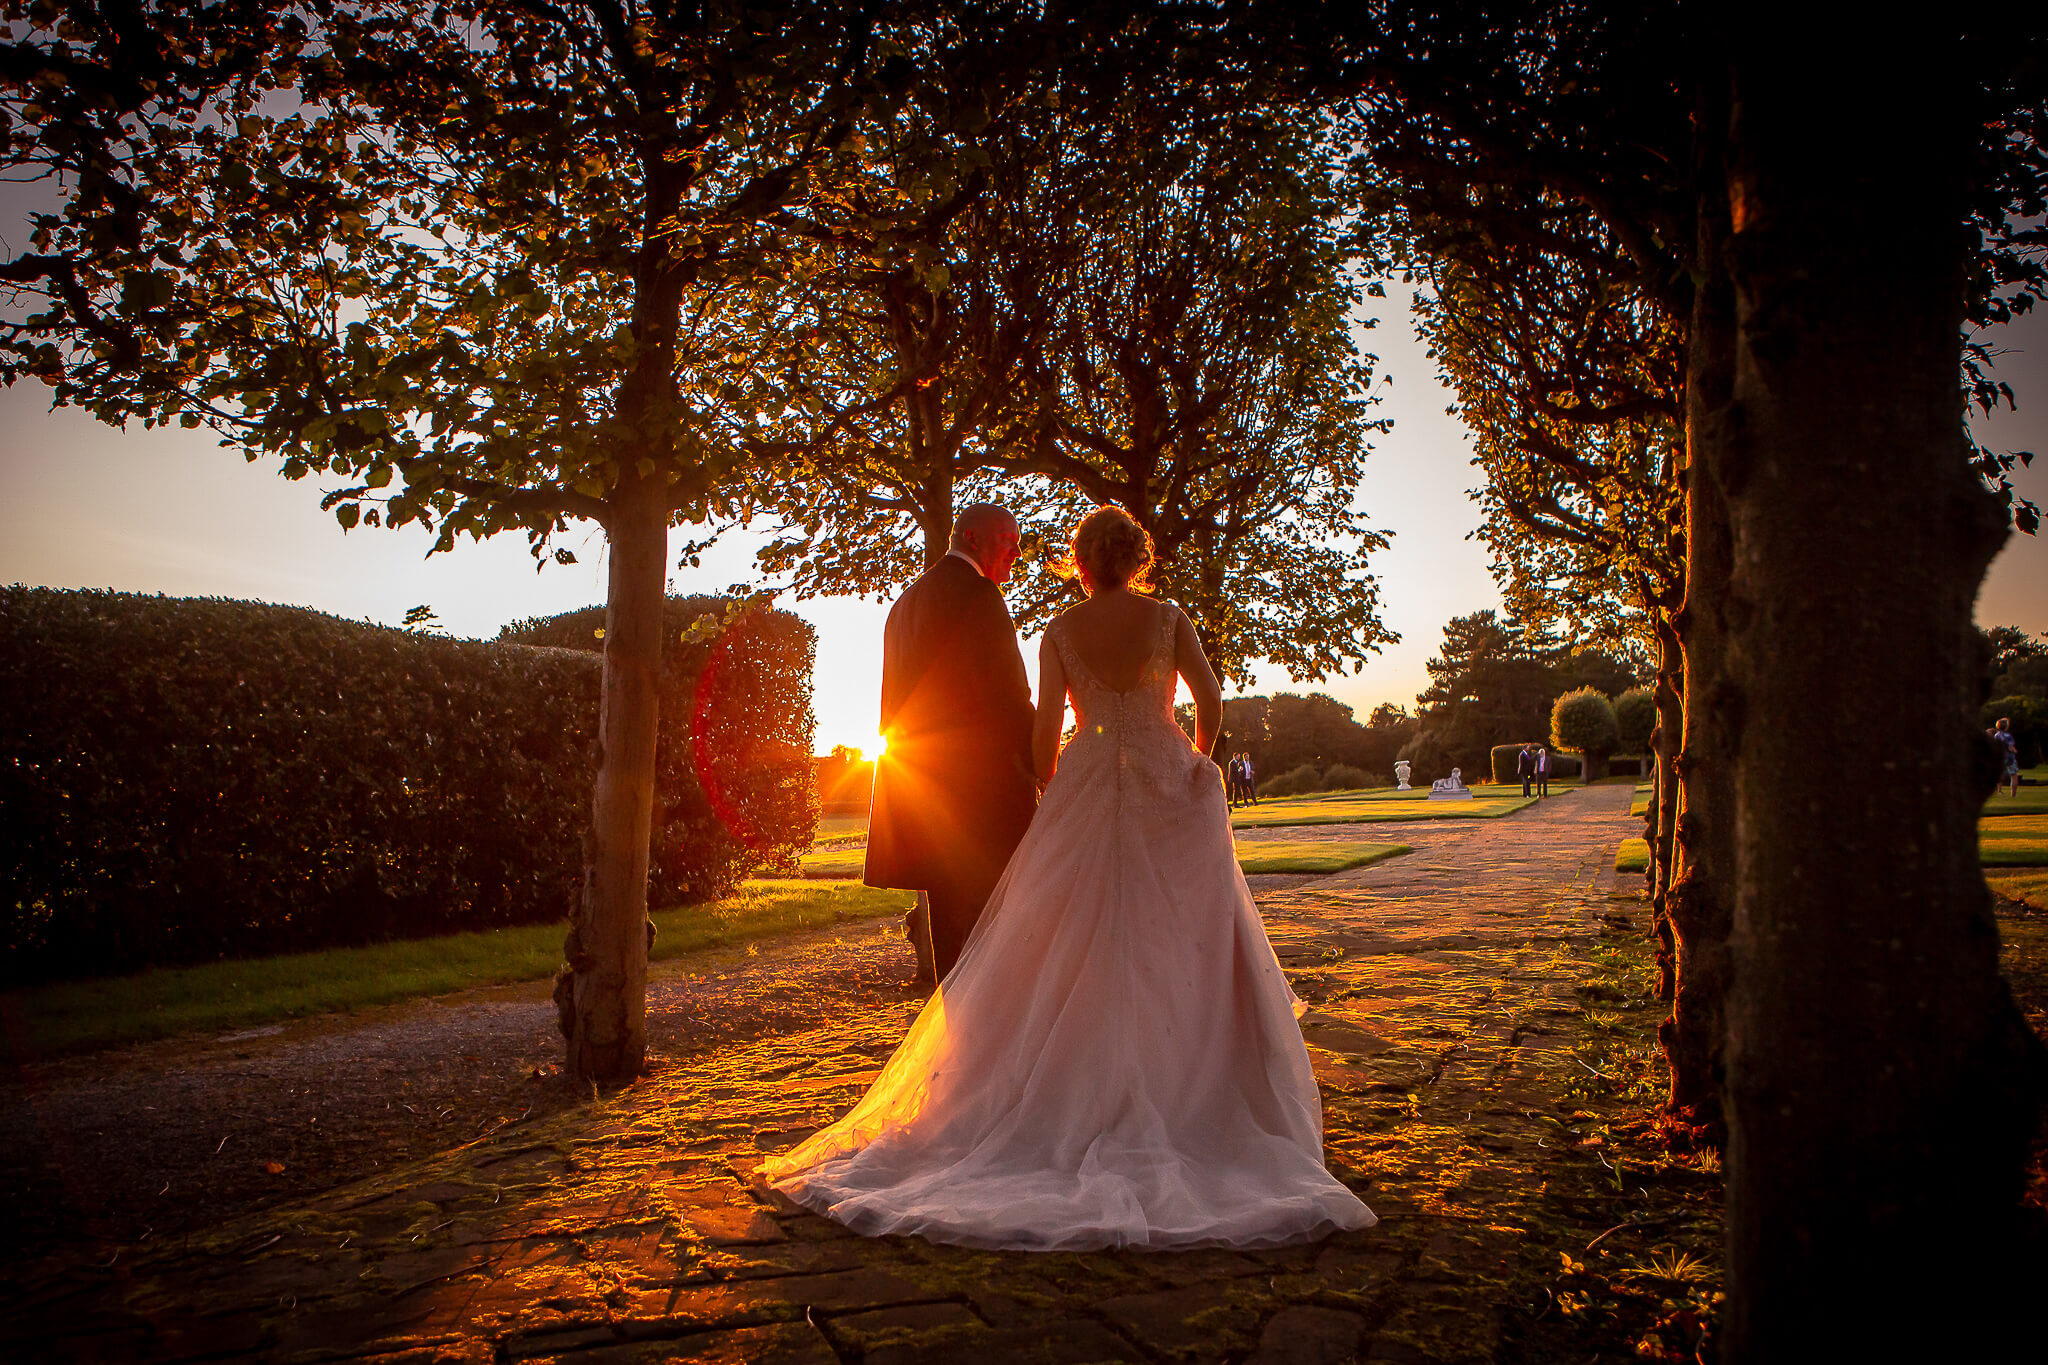 best-wedding-photographers-uk-europe-stanbury-photography-145